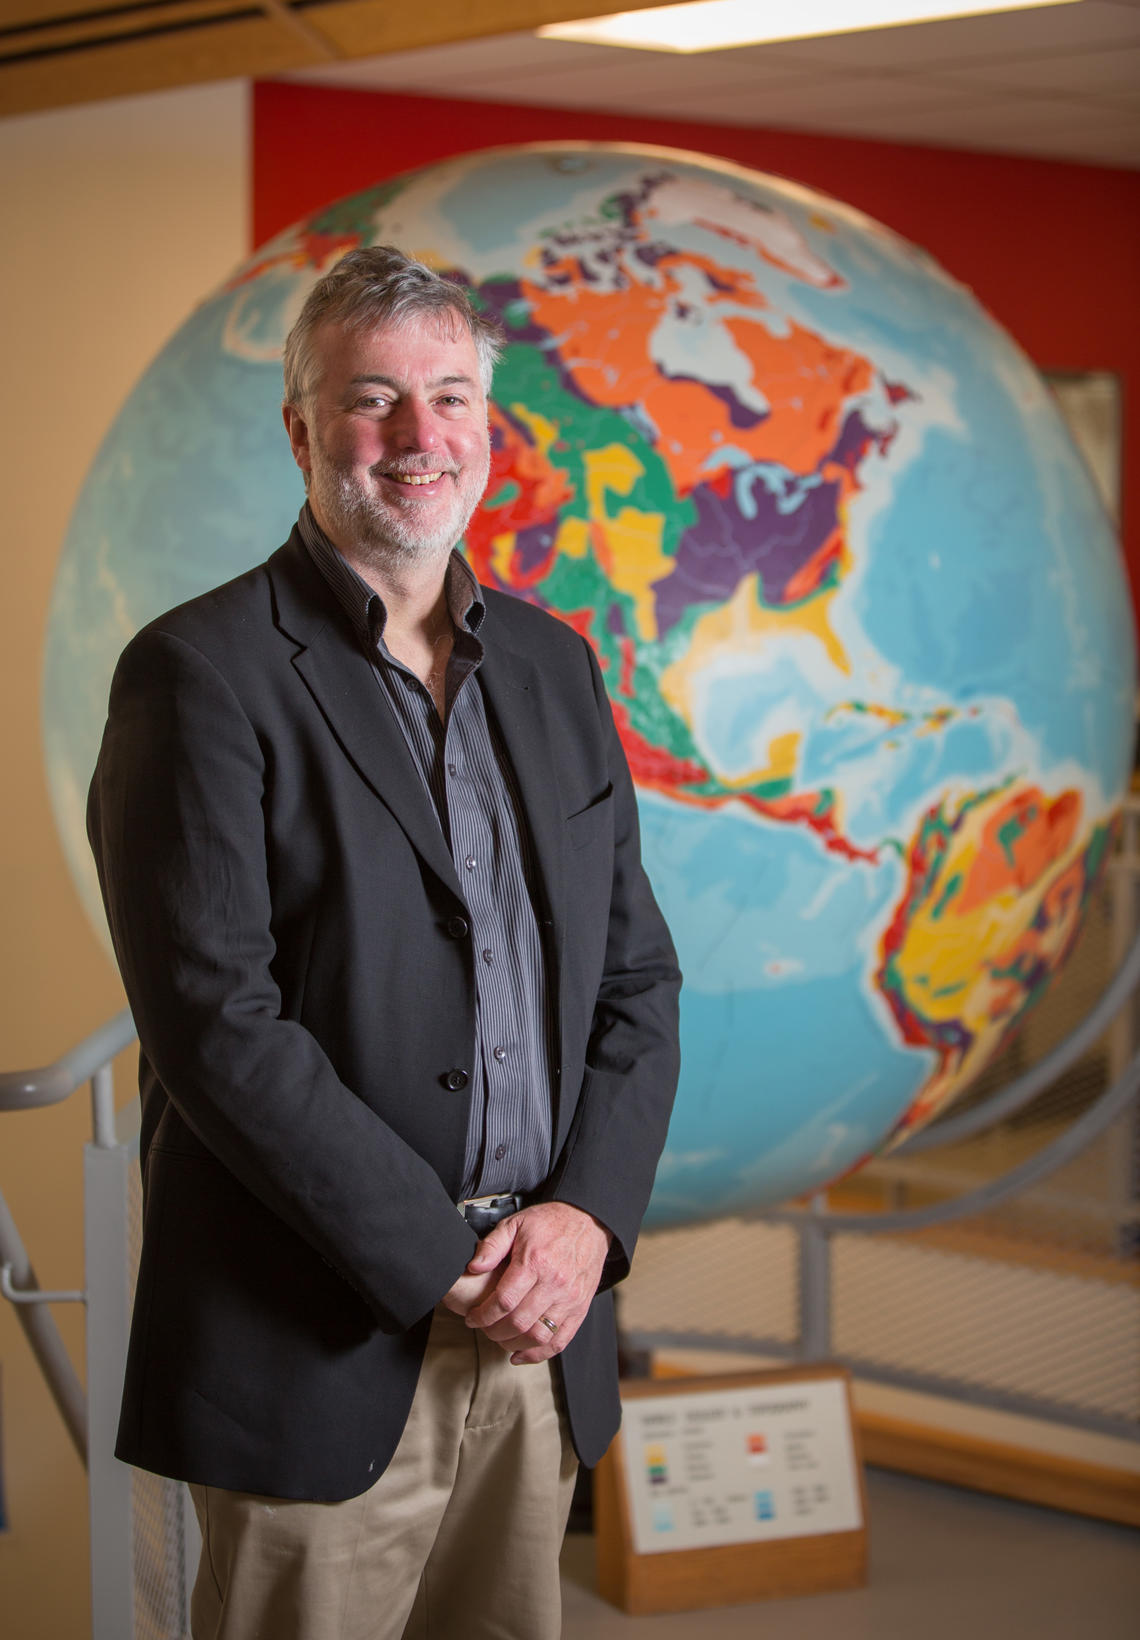 The University of Calgary's Eric Donovan says his call to Faculty of Science members to identify their strengths, their colleagues' strengths, and the faculty's capabilities yielded more than 350 responses.